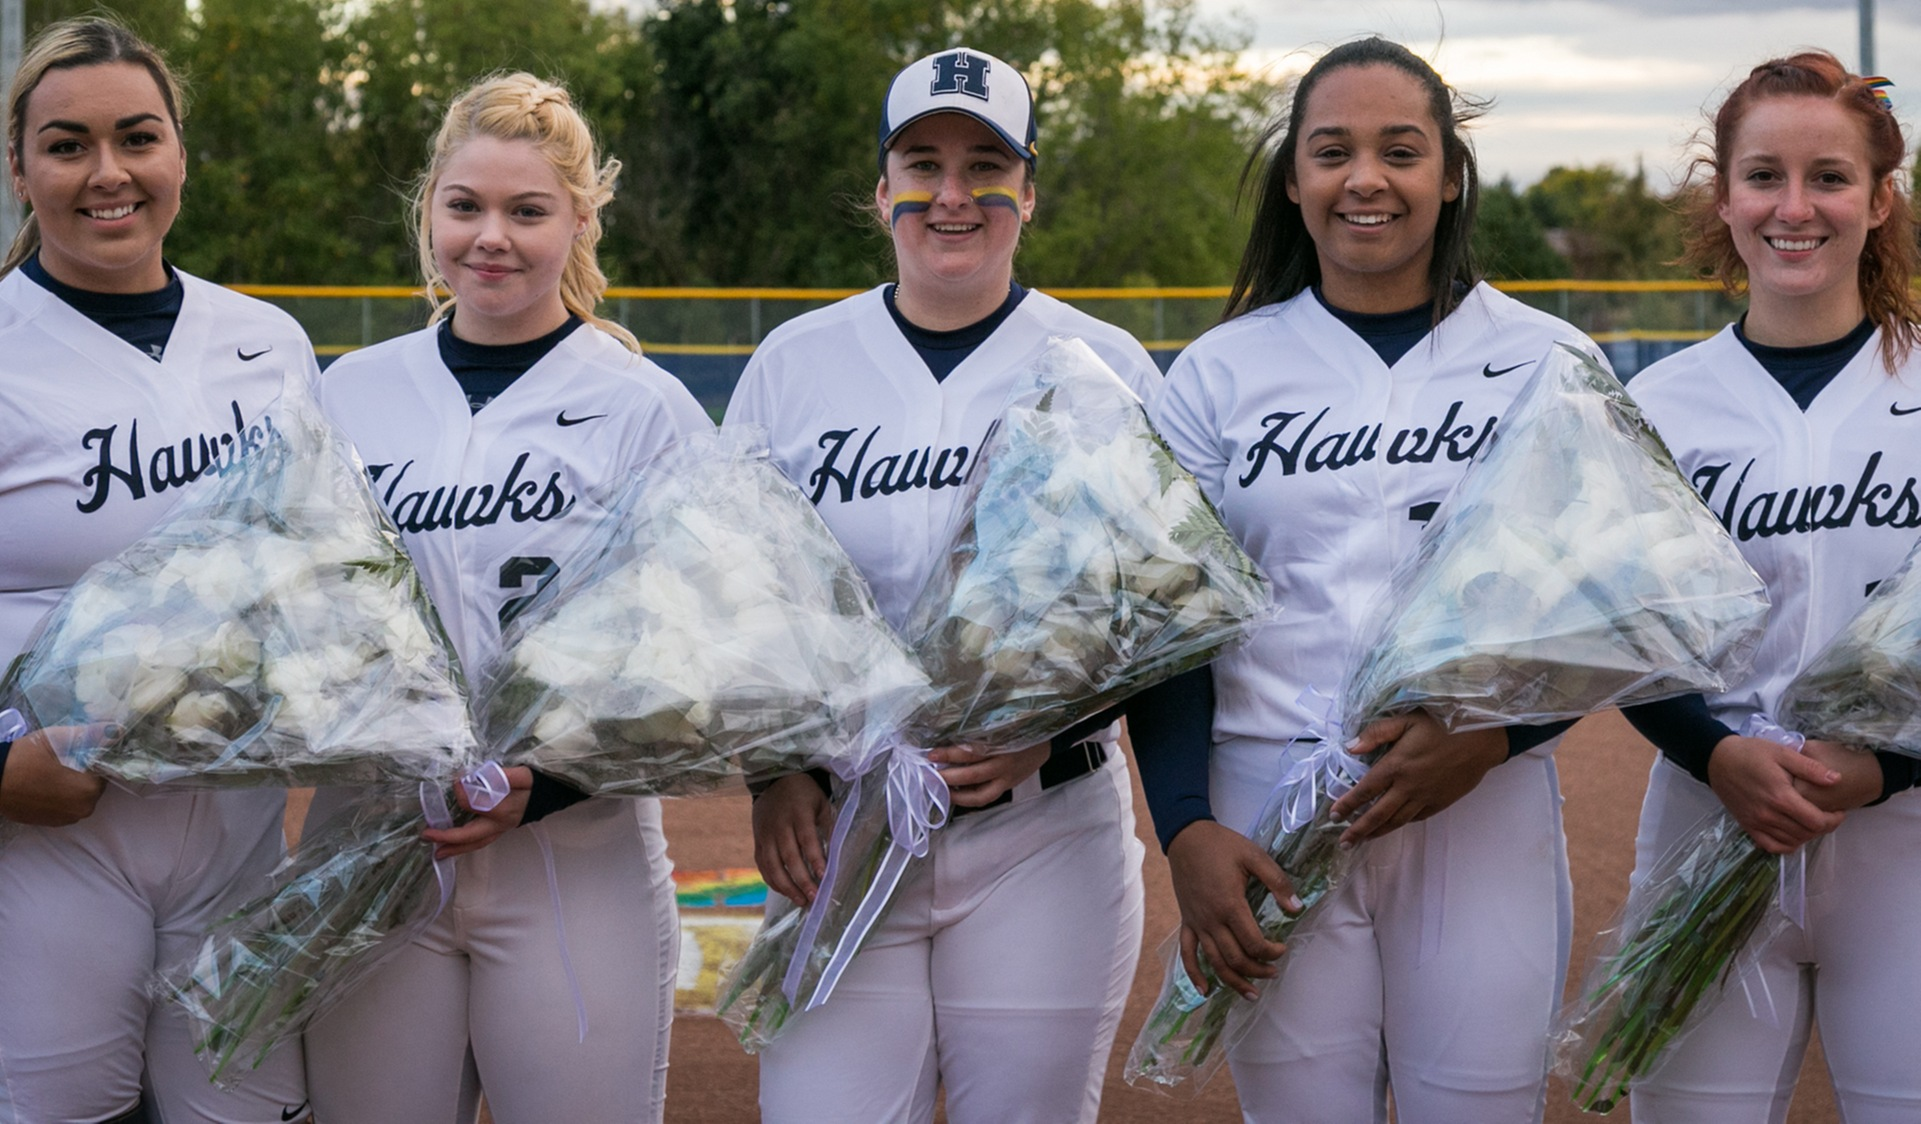 MEMORABLE NIGHT FOR SENIORS AS HAWK SWEEP STING TO END REGULAR SEASON 17-7